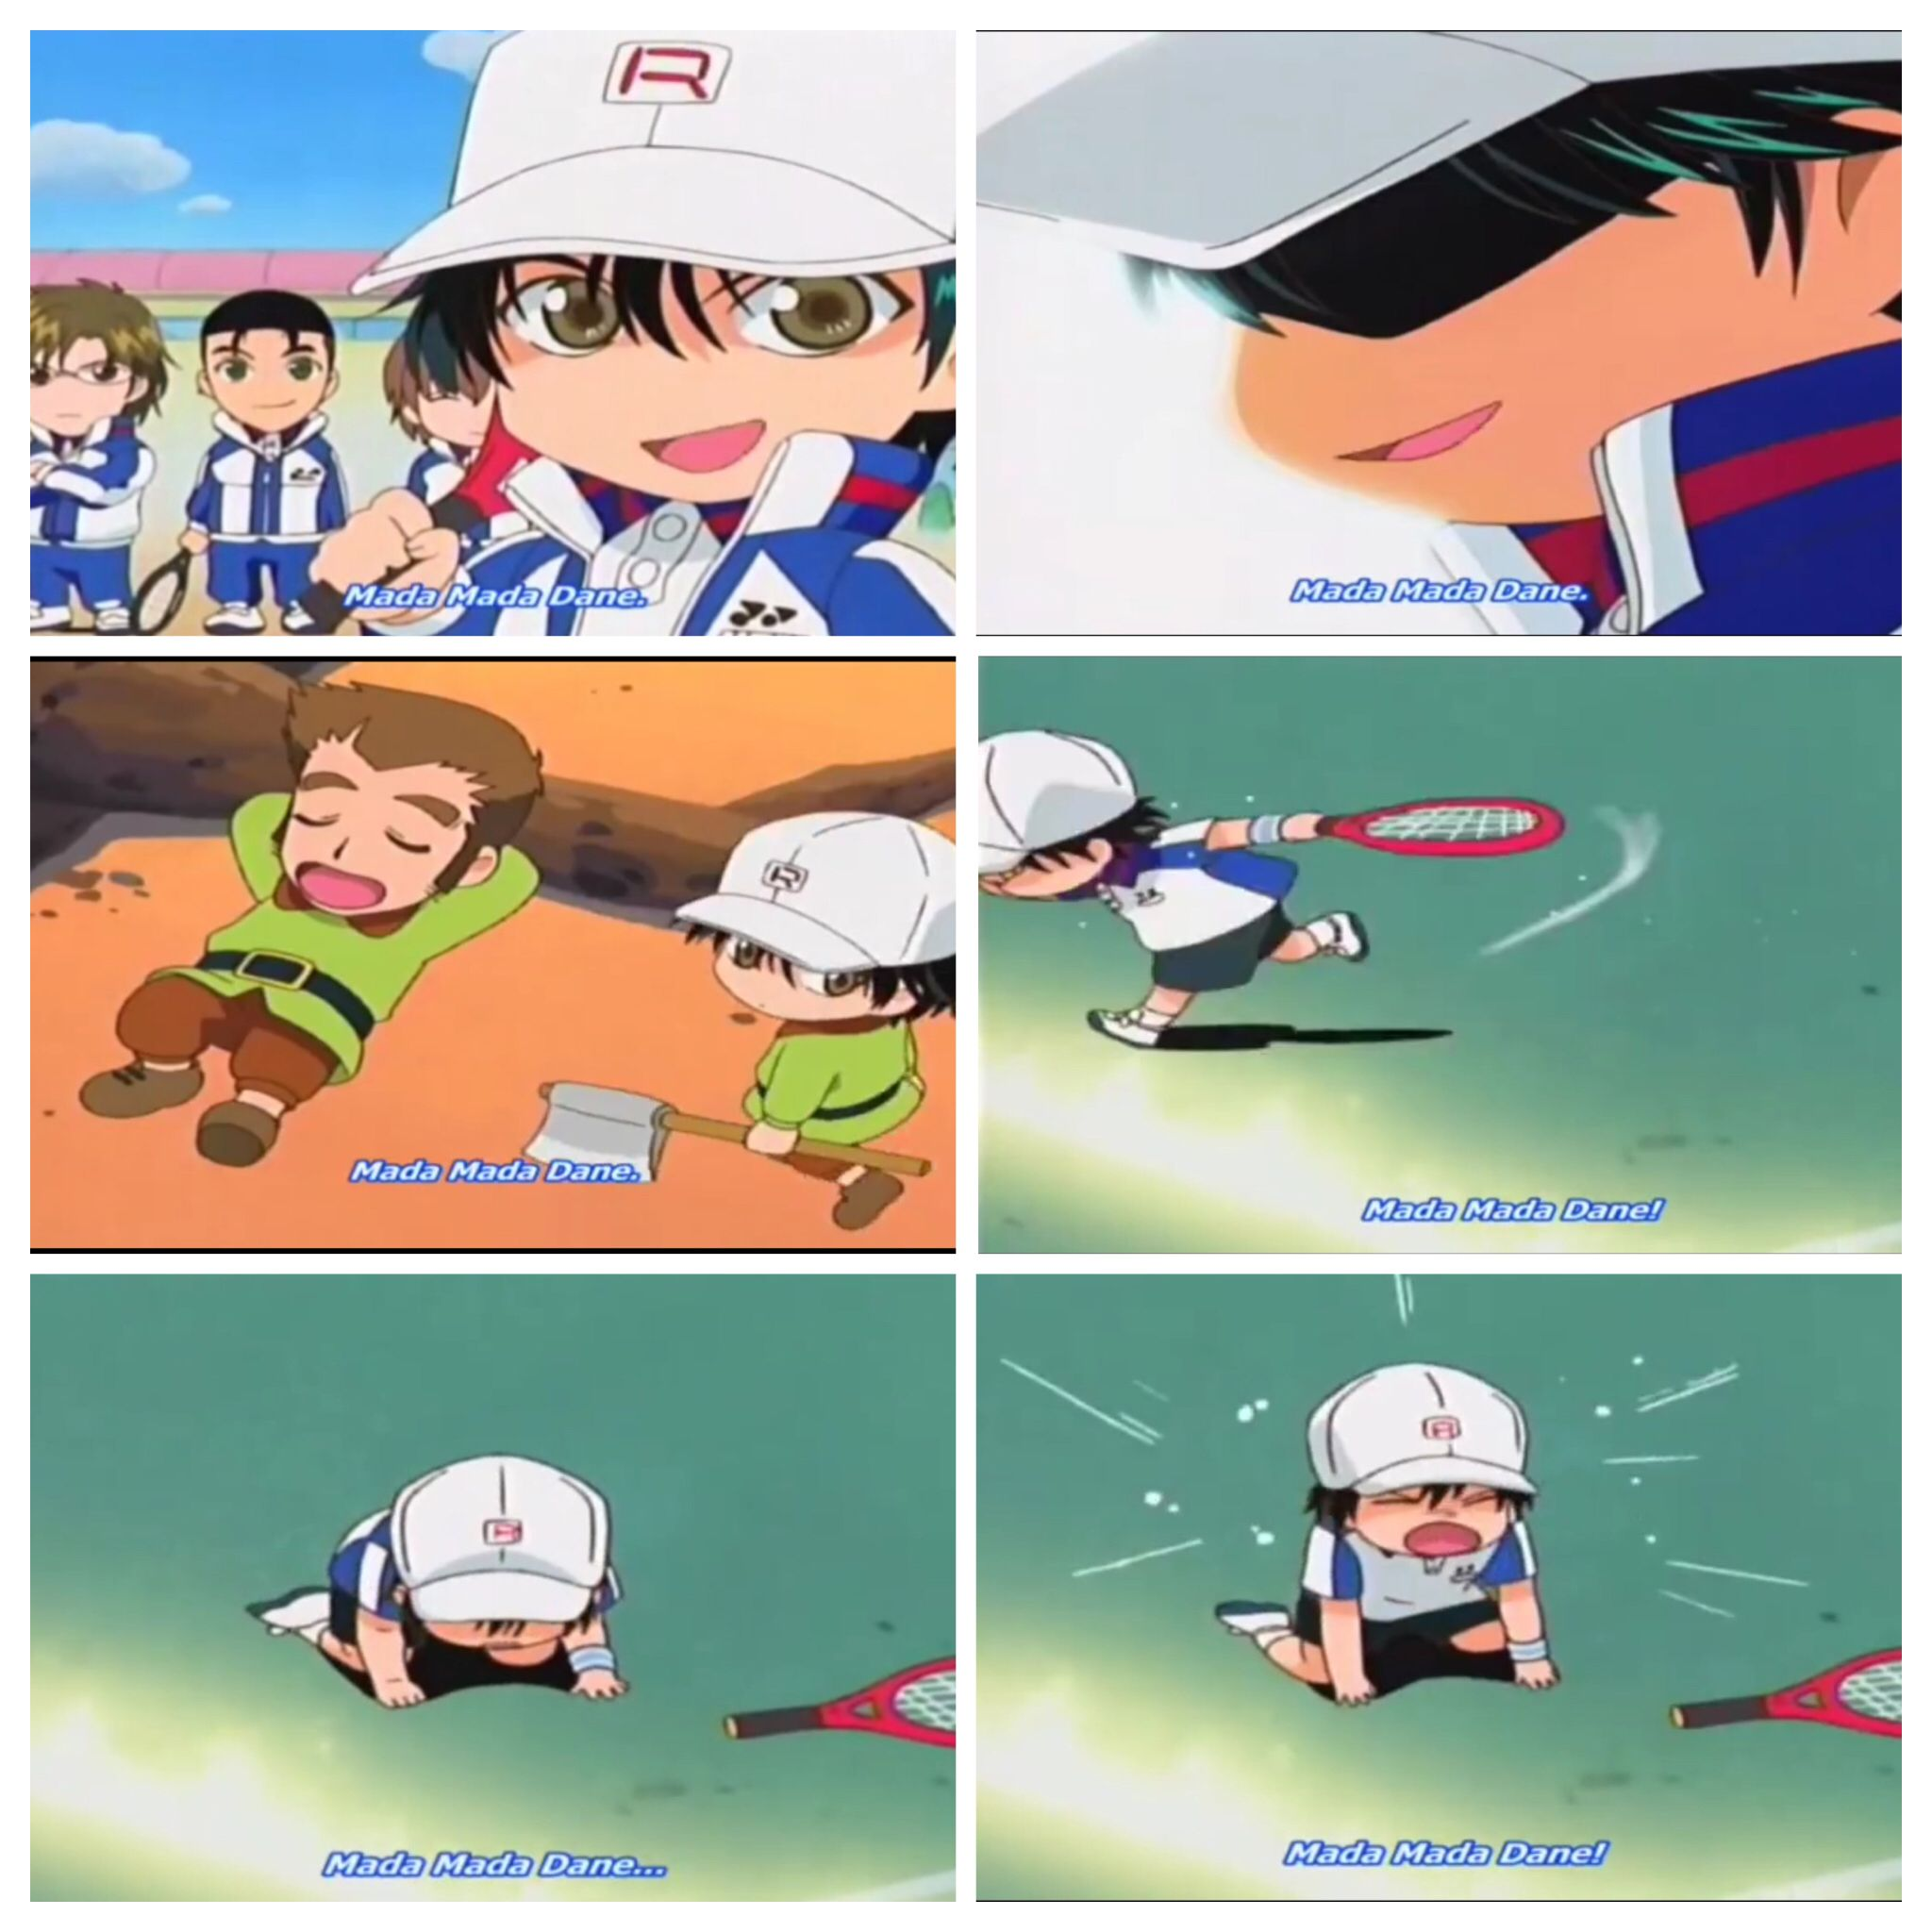 echizen.mine.nu Top 25 ideas about Prince of tennis on Pinterest | Chibi, Quotes and Osaka